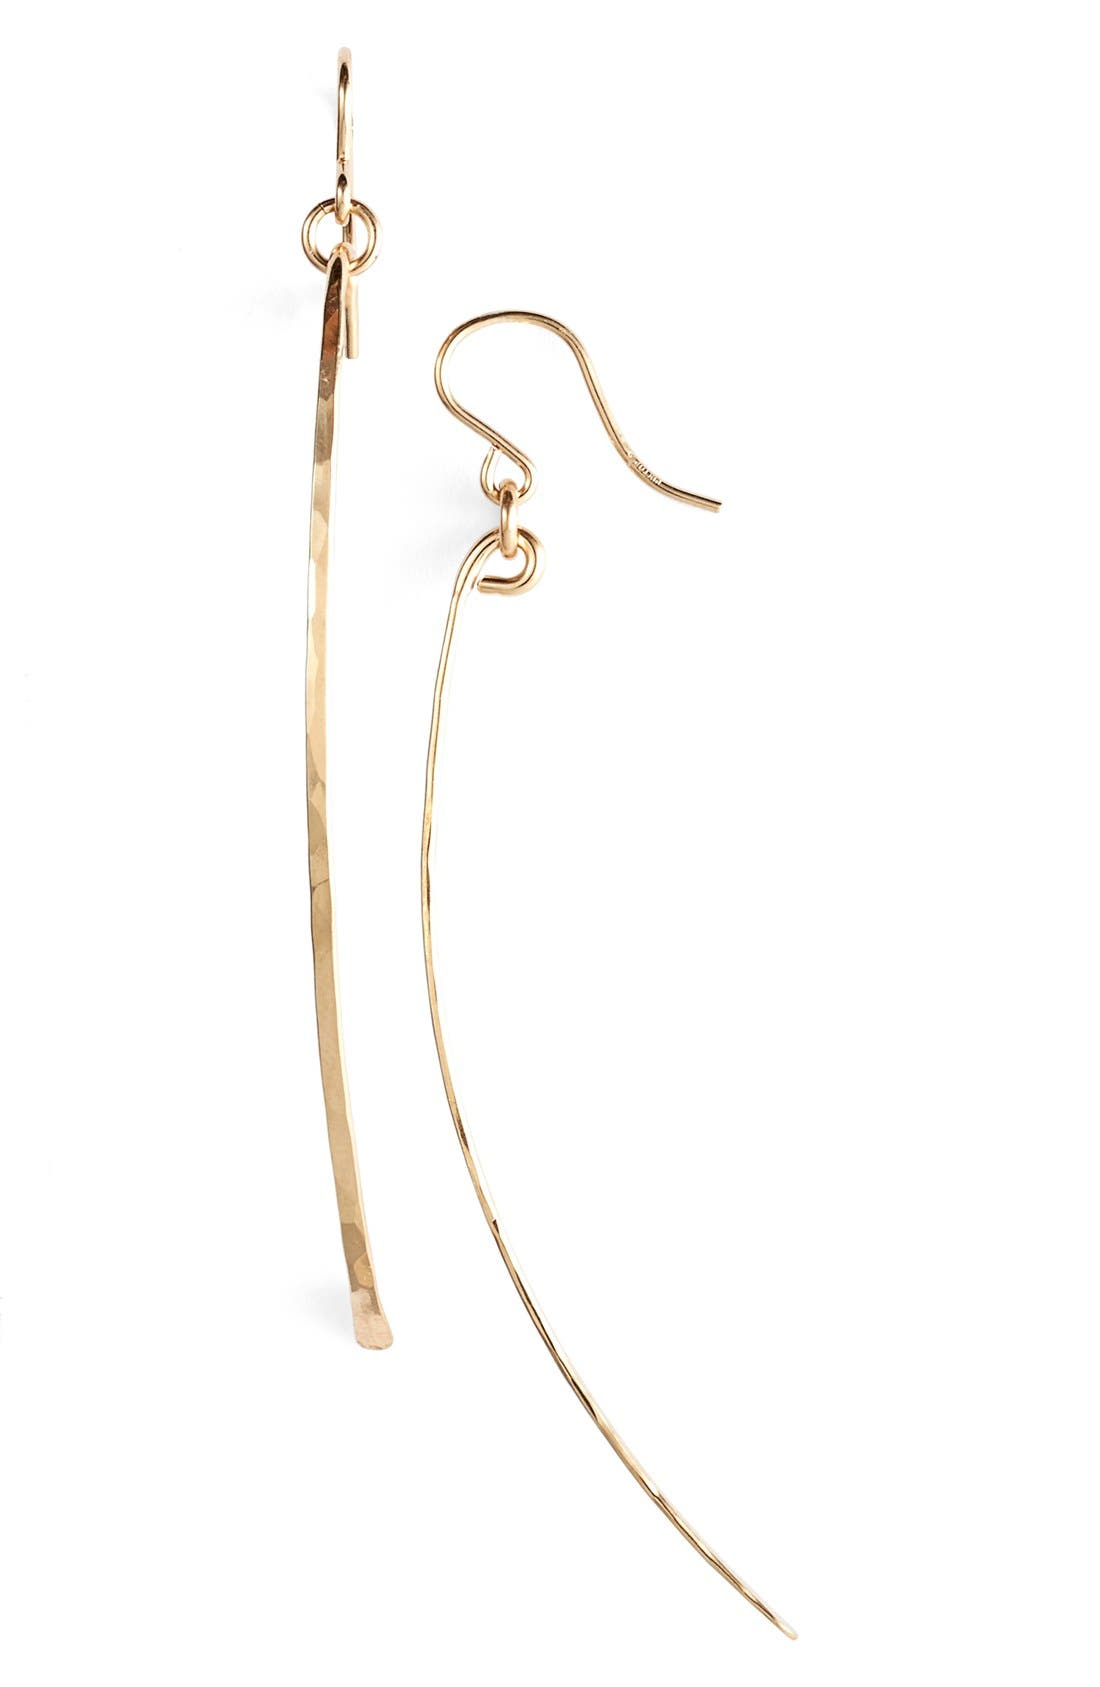 Ija Twig Drop Earrings,                         Main,                         color, 14K Gold Fill